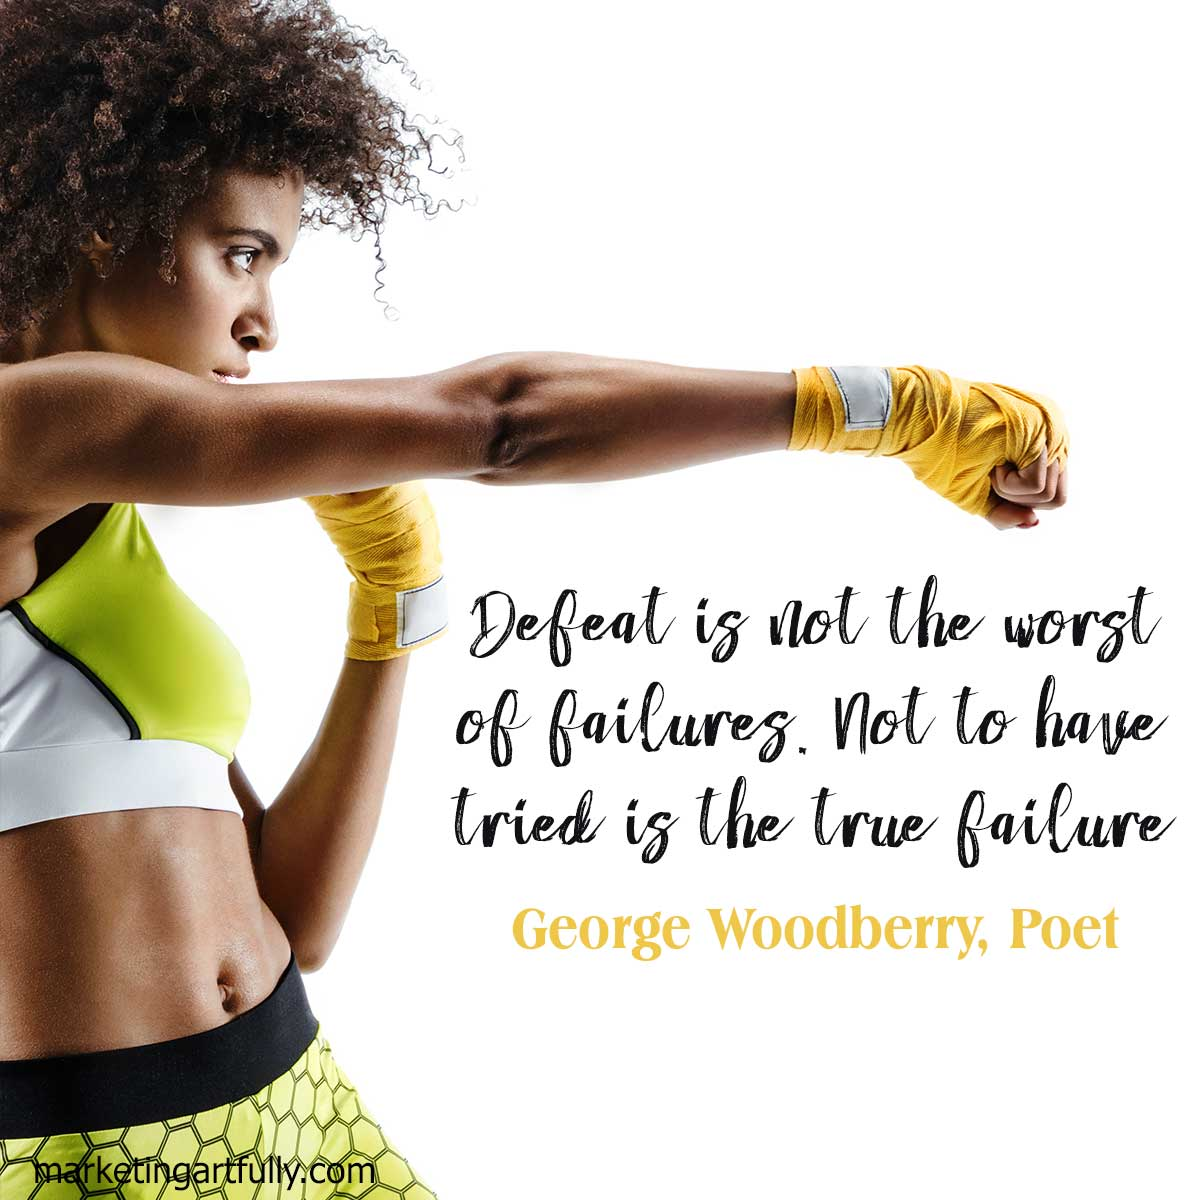 Defeat is not the worst of failures. Not to have tried is the true failure.George Woodberry, Poet